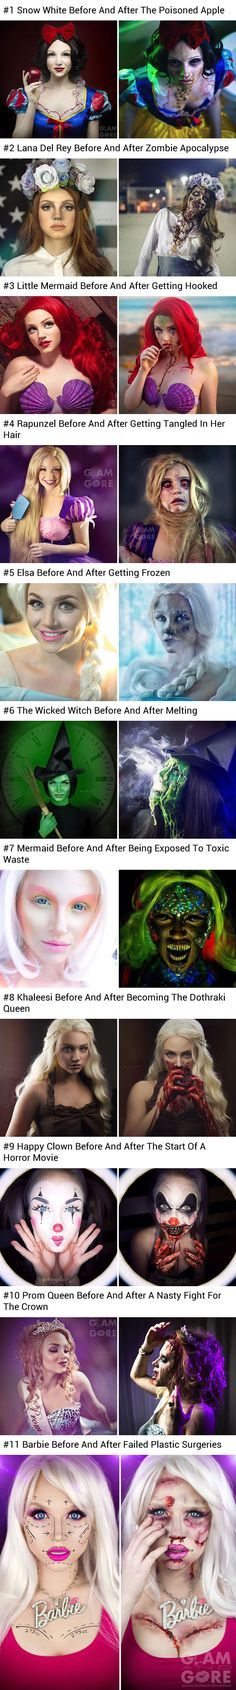 Makeup Artist Shows The Horrifying Fate Of Disney Princesses And Pop Icons》》Yes, GlamandGore!!!